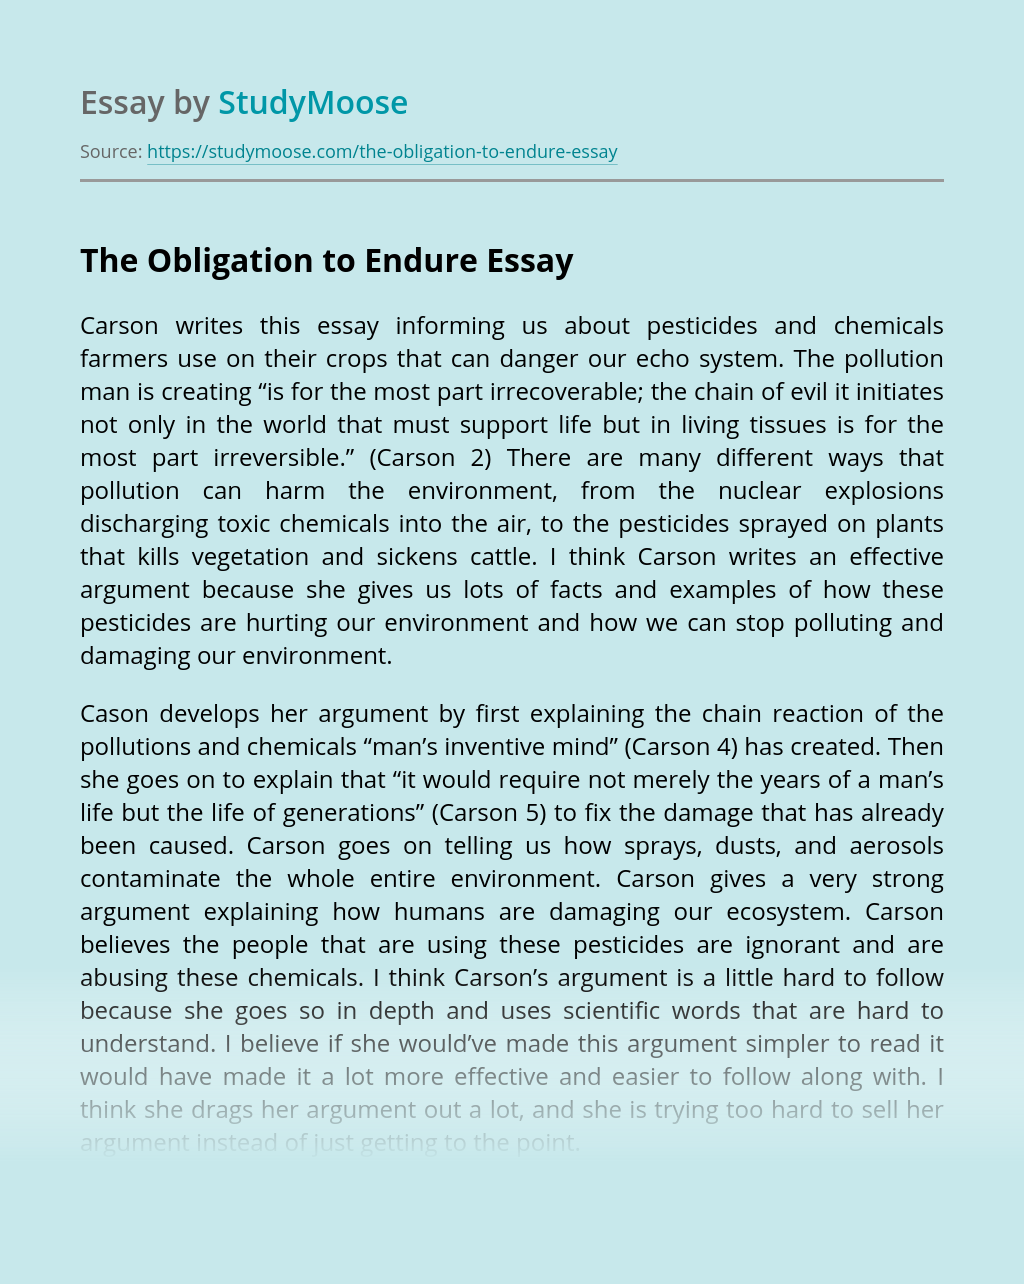 The Obligation to Endure